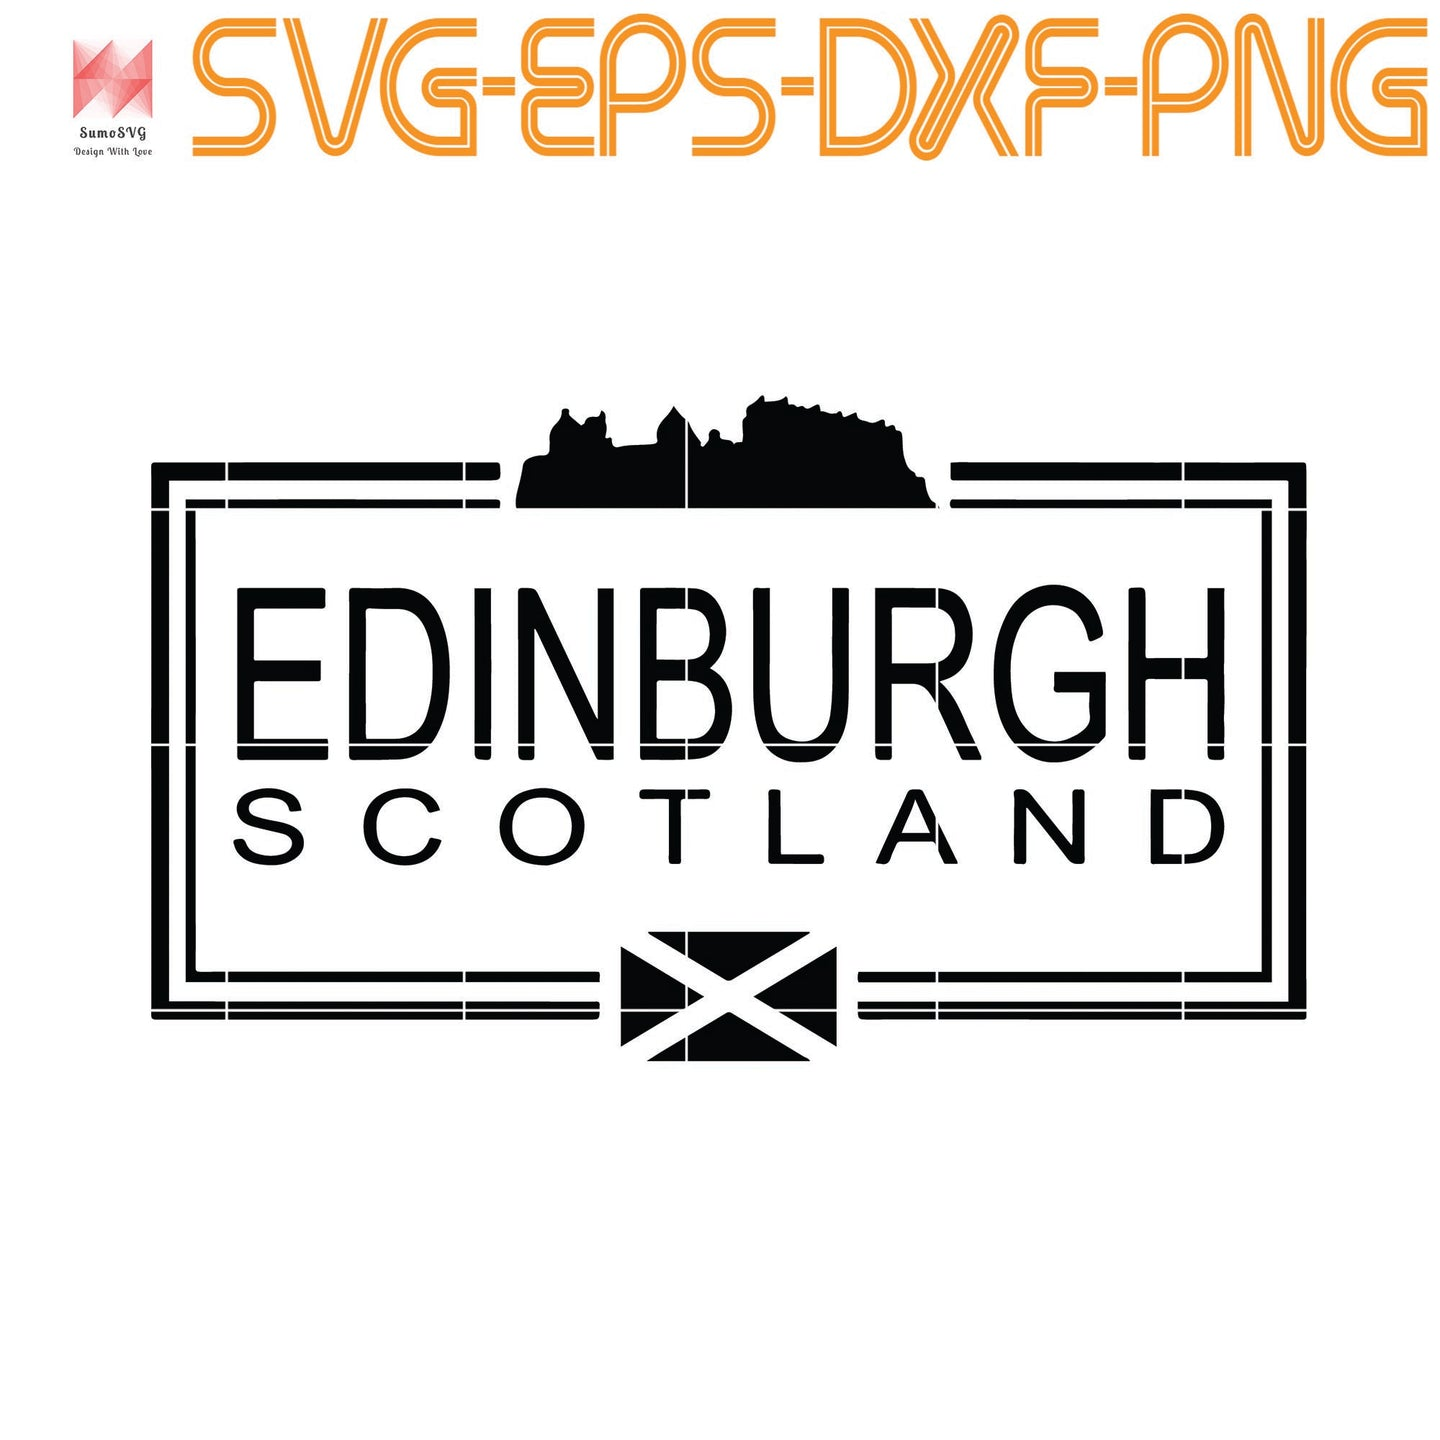 Edinburgh Scotland, Quotes, Funny Quotes, Cameo, Cricut, Silhouette, SVG, PNG, Eps, DXF, Digital Download